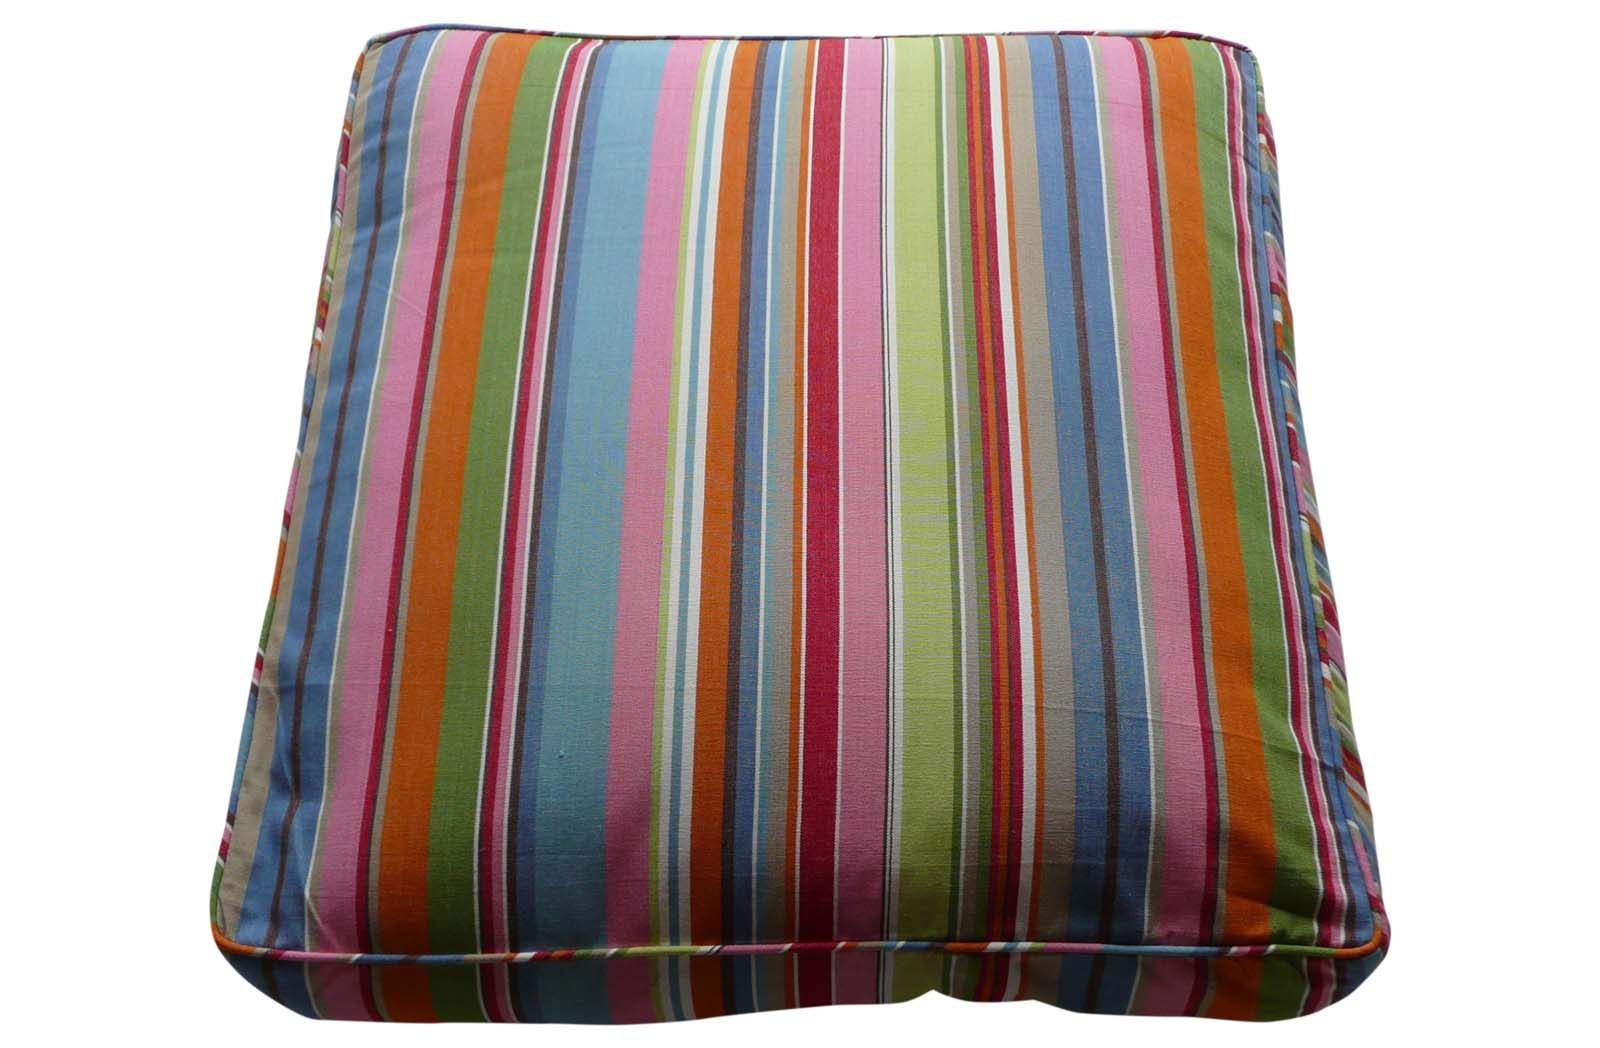 Large Blue And Pink Stripe Floor Cushions